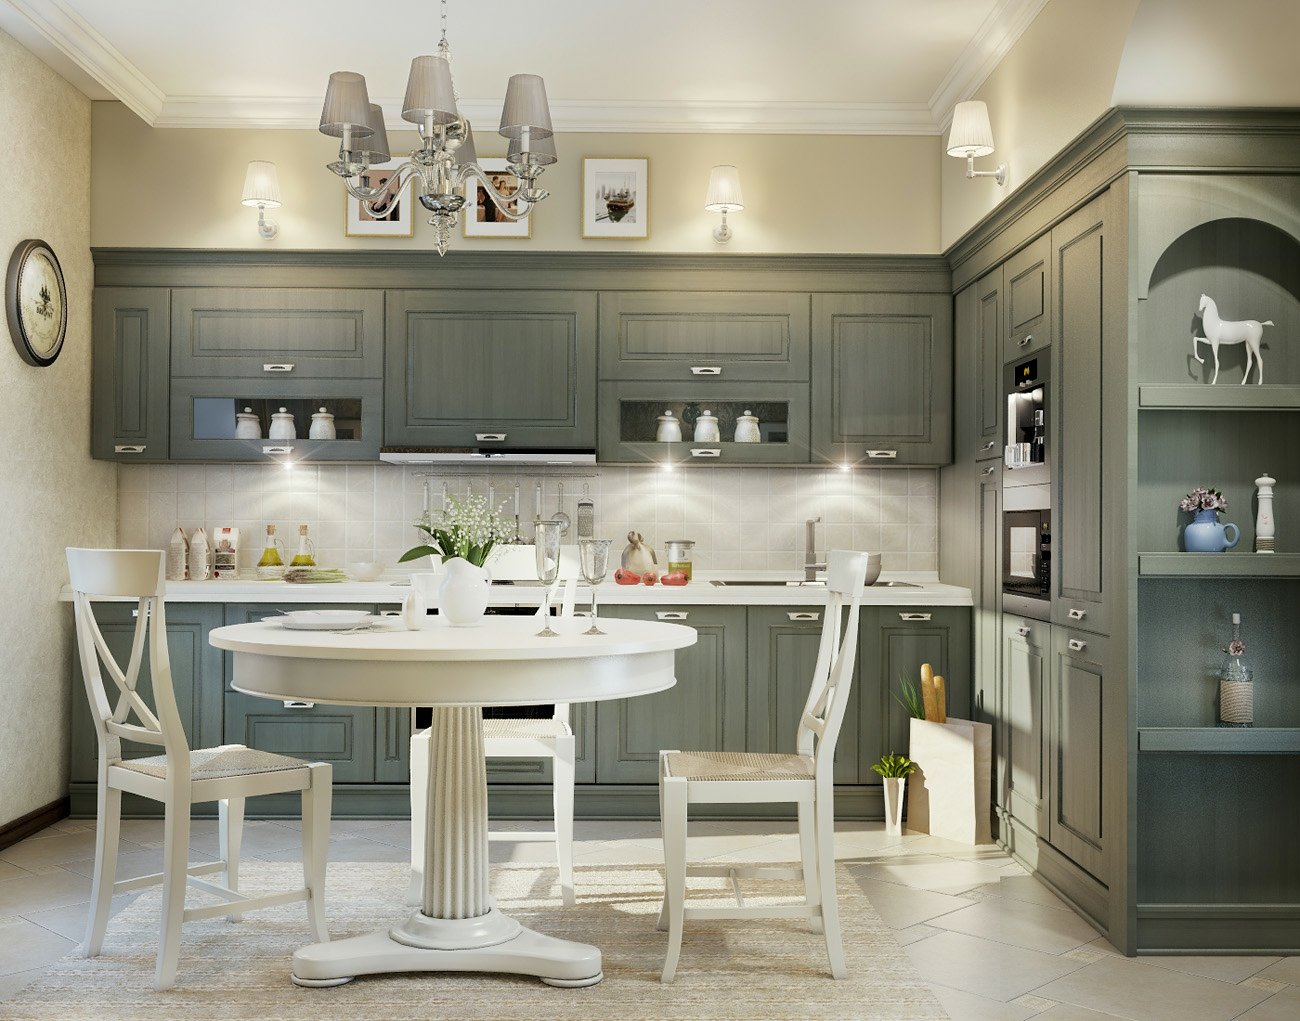 Traditional kitchen design ideas ▷ The best ☆ kitchens of the world